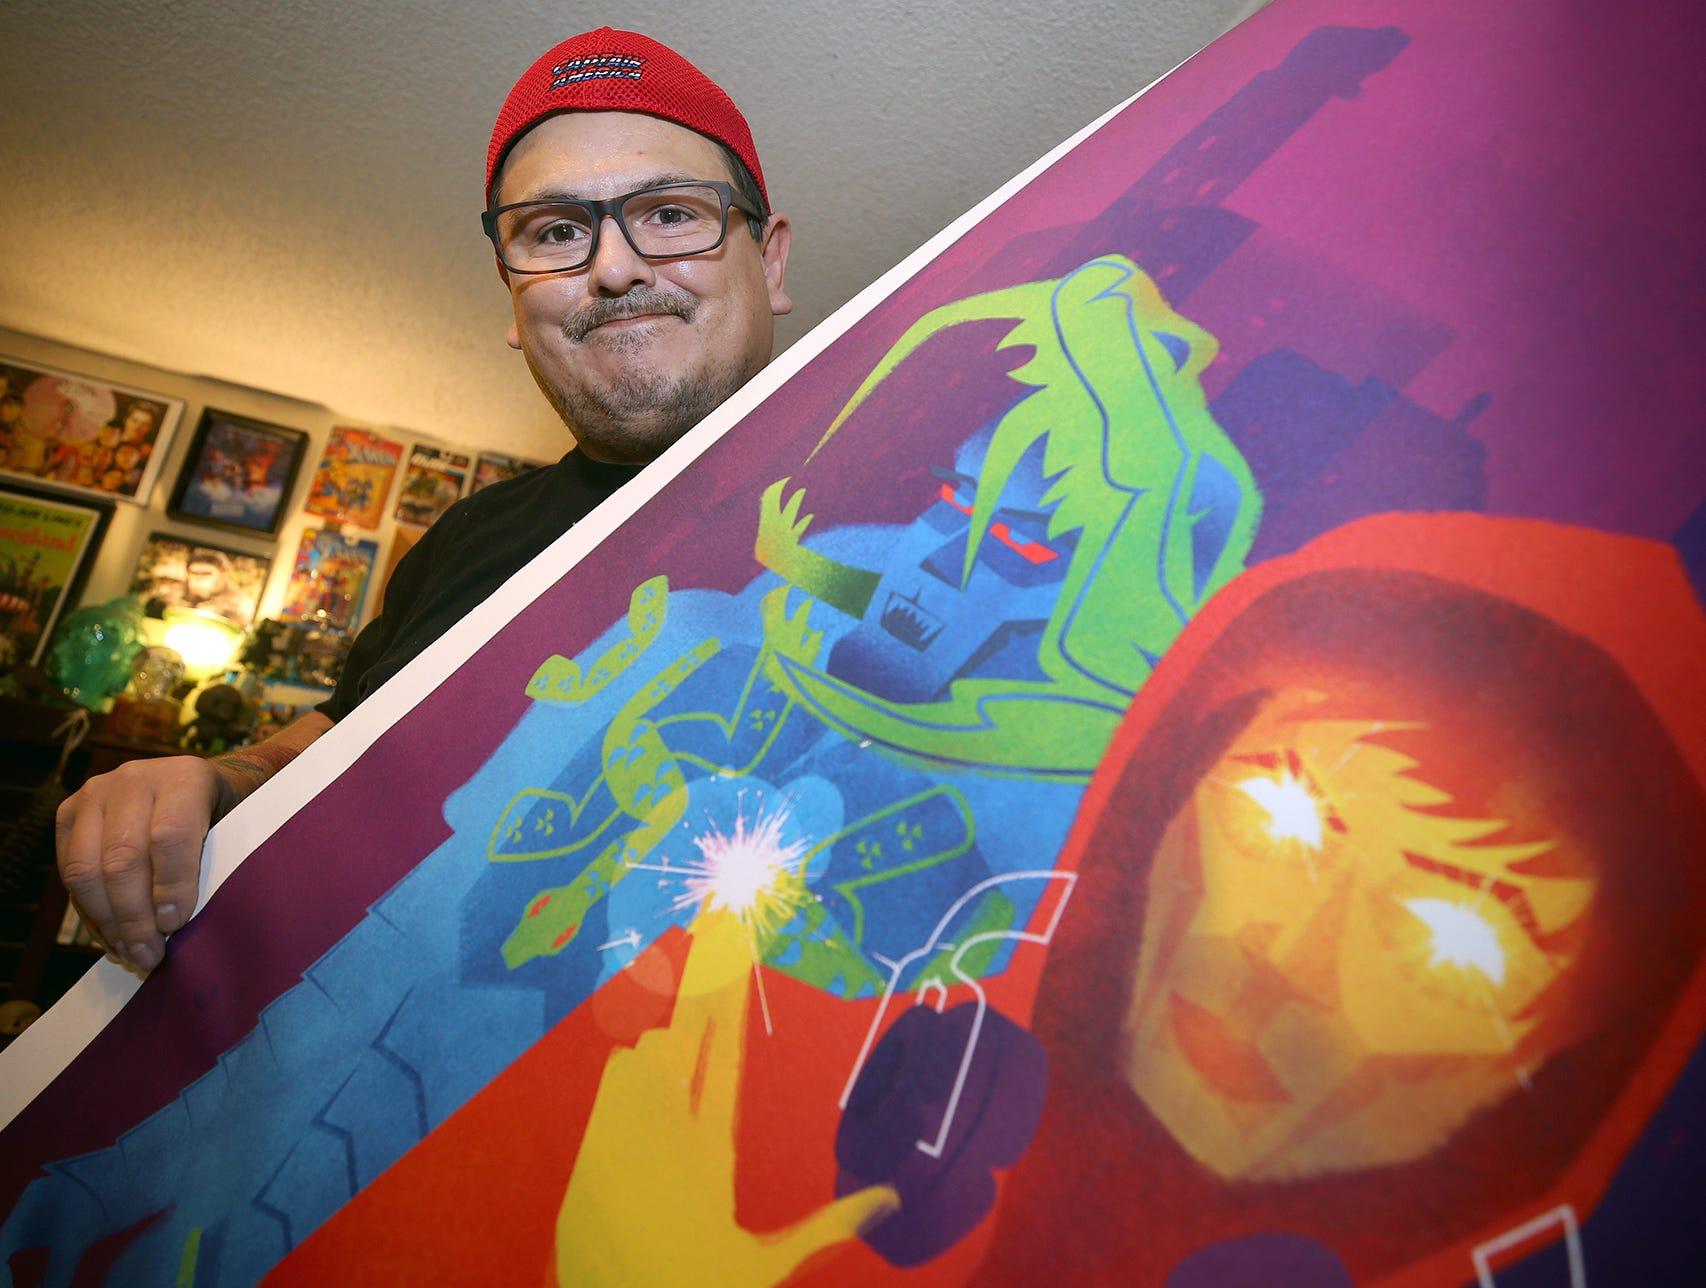 S'Klallam artist Jeffrey Veregge has an exhibit in the Smithsonian National Museum of the American Indian in New York City that will show off some of his work illustrating Marvel superheroes over the next year. He is holding a poster print, used to show the colors for the Smithsonian Museum.